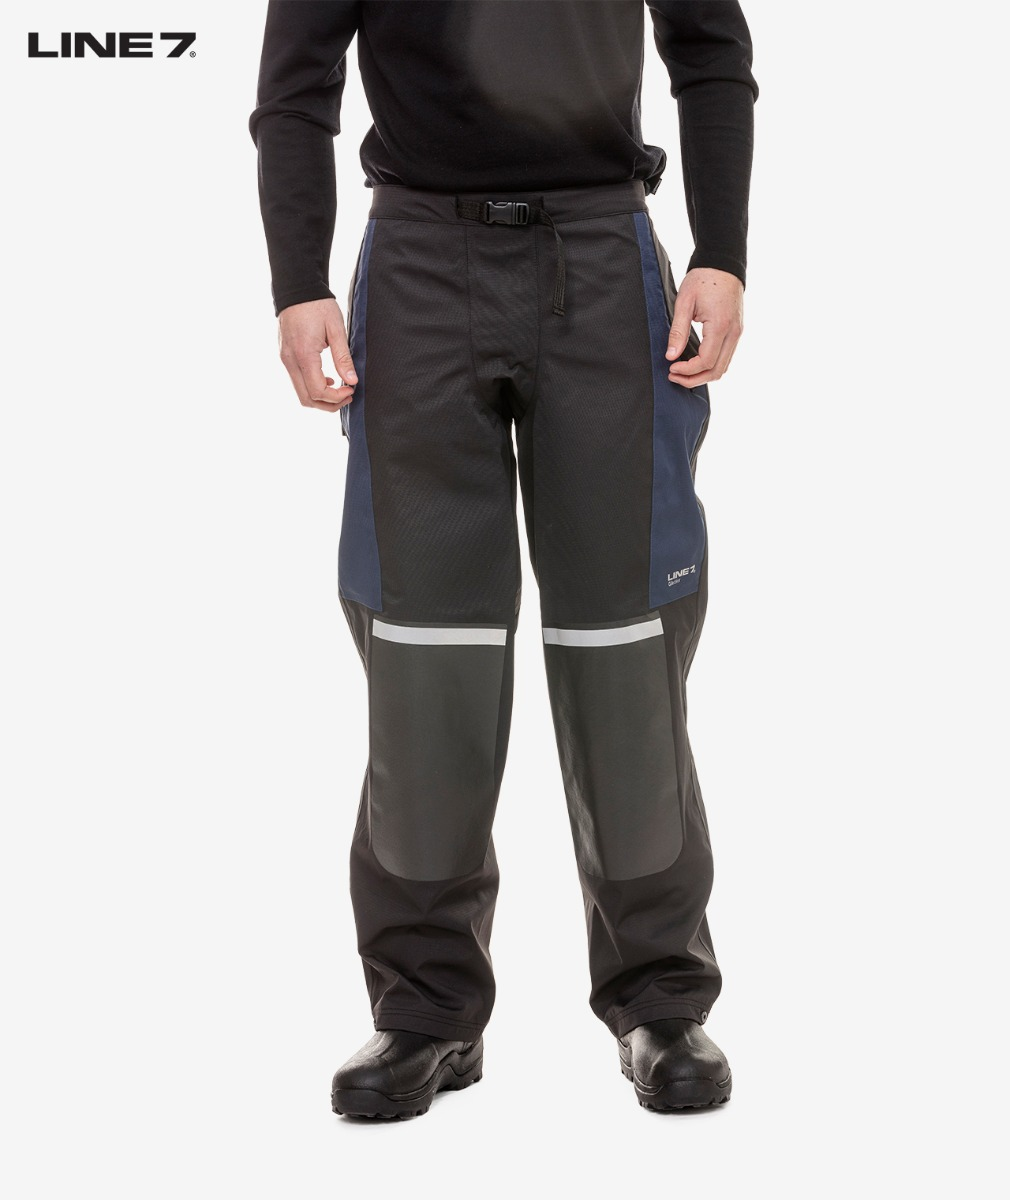 Line 7 Men's Glacier Waterproof Over Trouser in Black